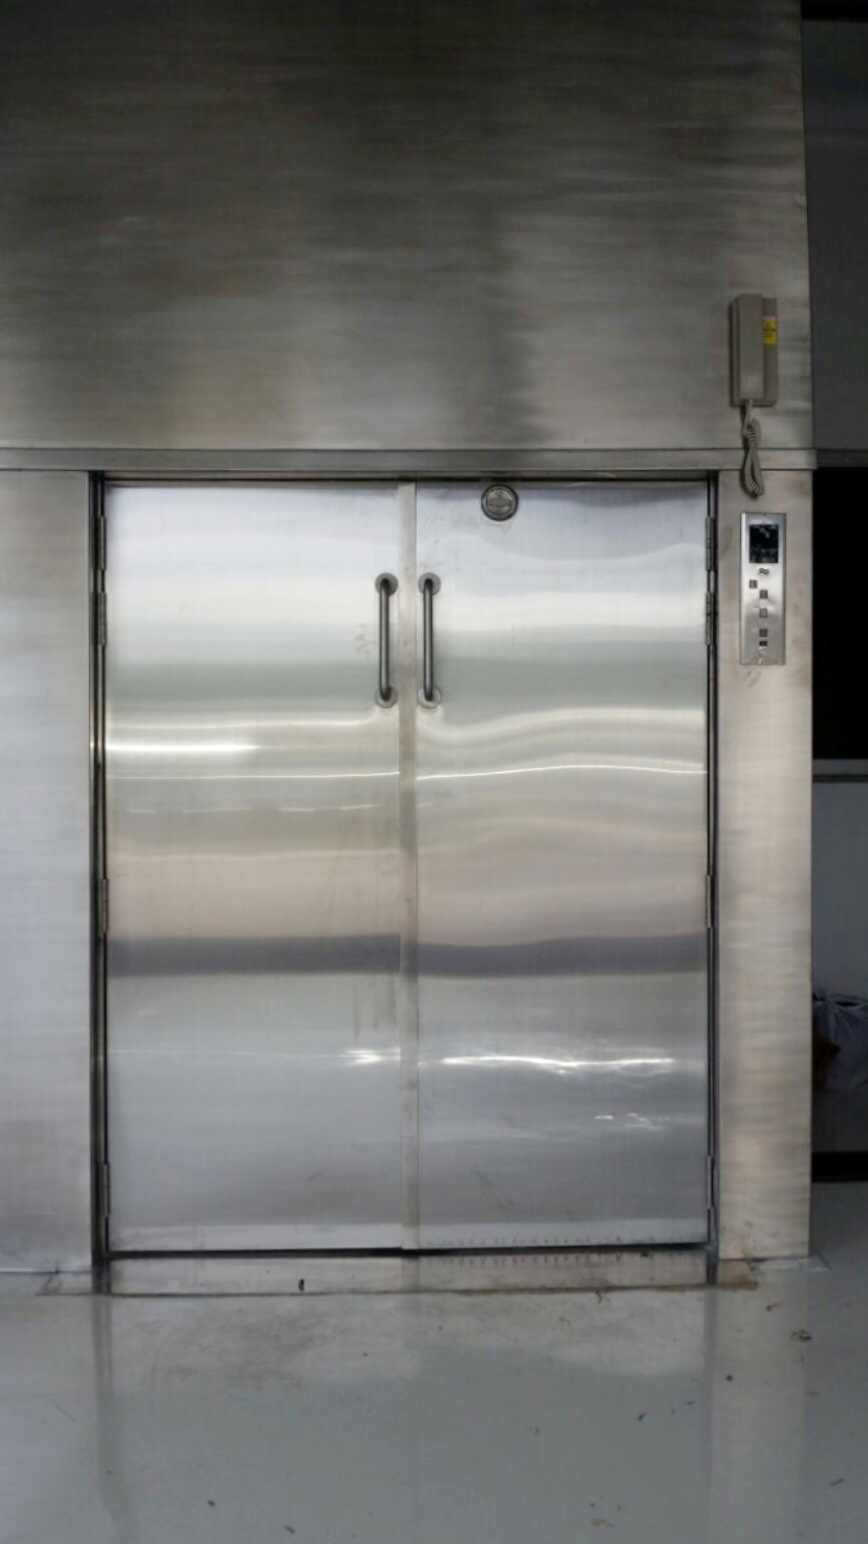 2-panel centre manual swing landing dumbwaiter doors and cabin doors.